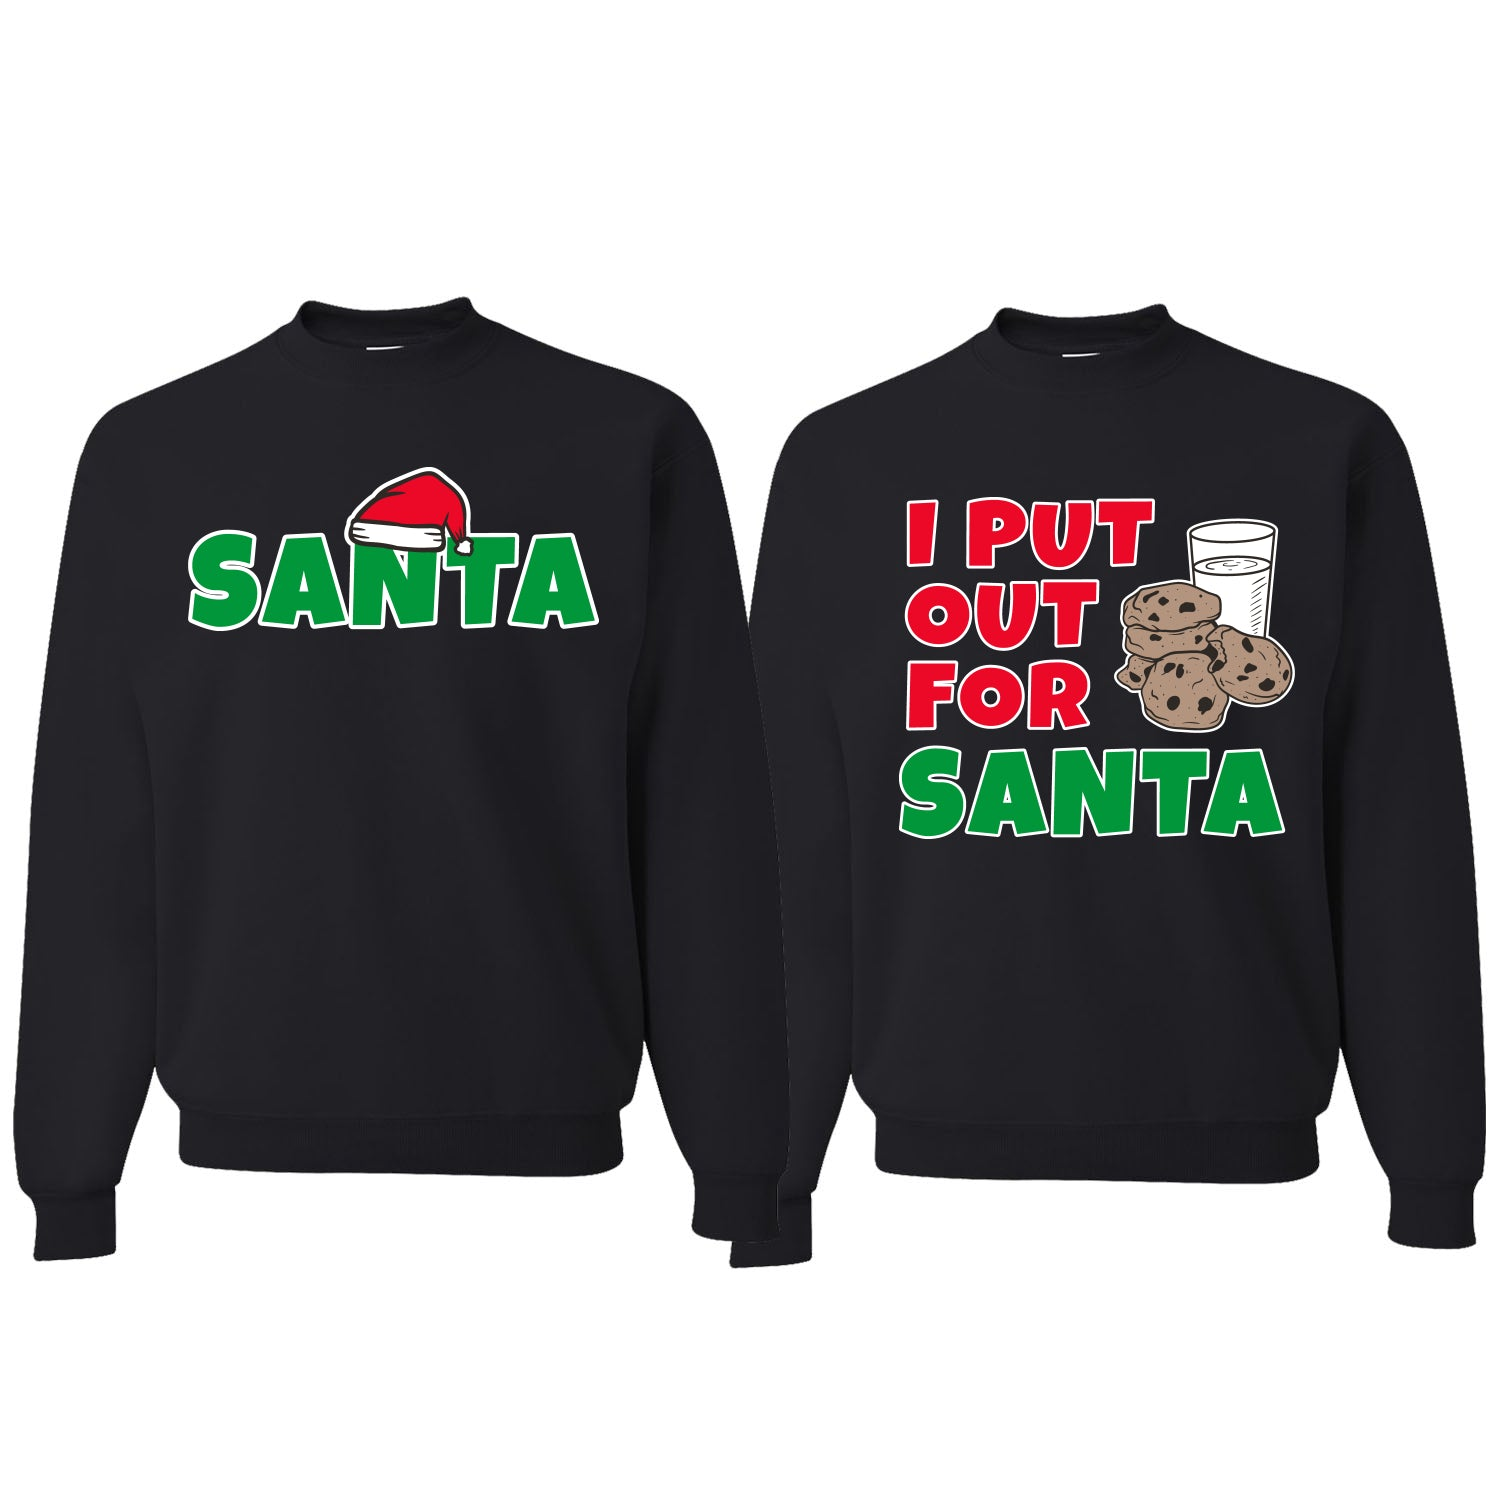 I Put Out For Santa Cookies Milk Xmas Christmas Matching Couples Crewneck Sweater